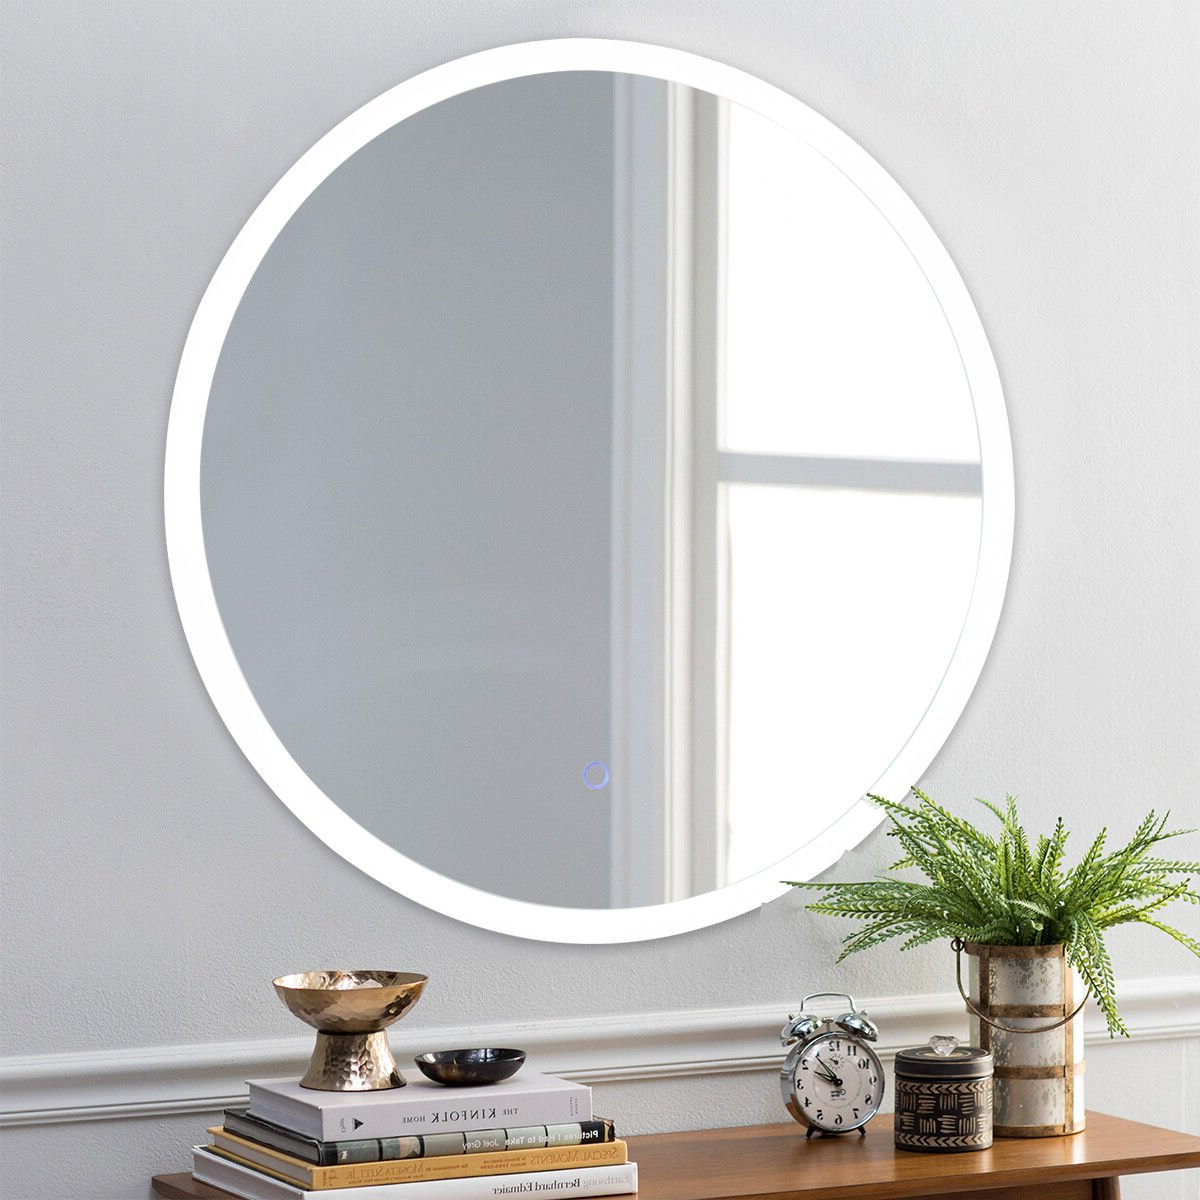 Light Wall Mirrors Throughout Popular Costway 24'' Led Mirror Illuminated Light Wall Mount Bathroom Round Make Up Touch Button (View 4 of 20)